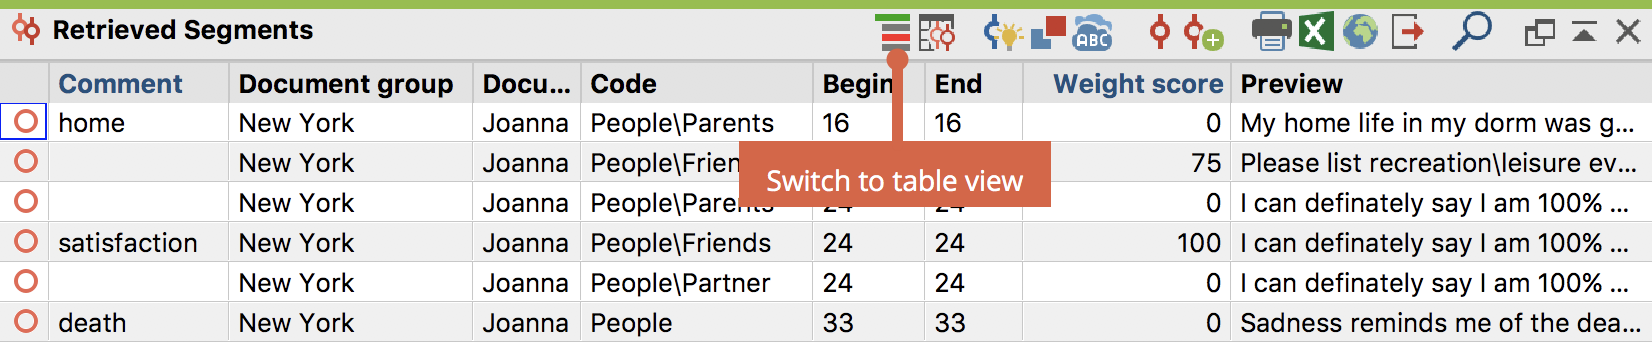 "The ""Retrieved Segments"" in a table view"